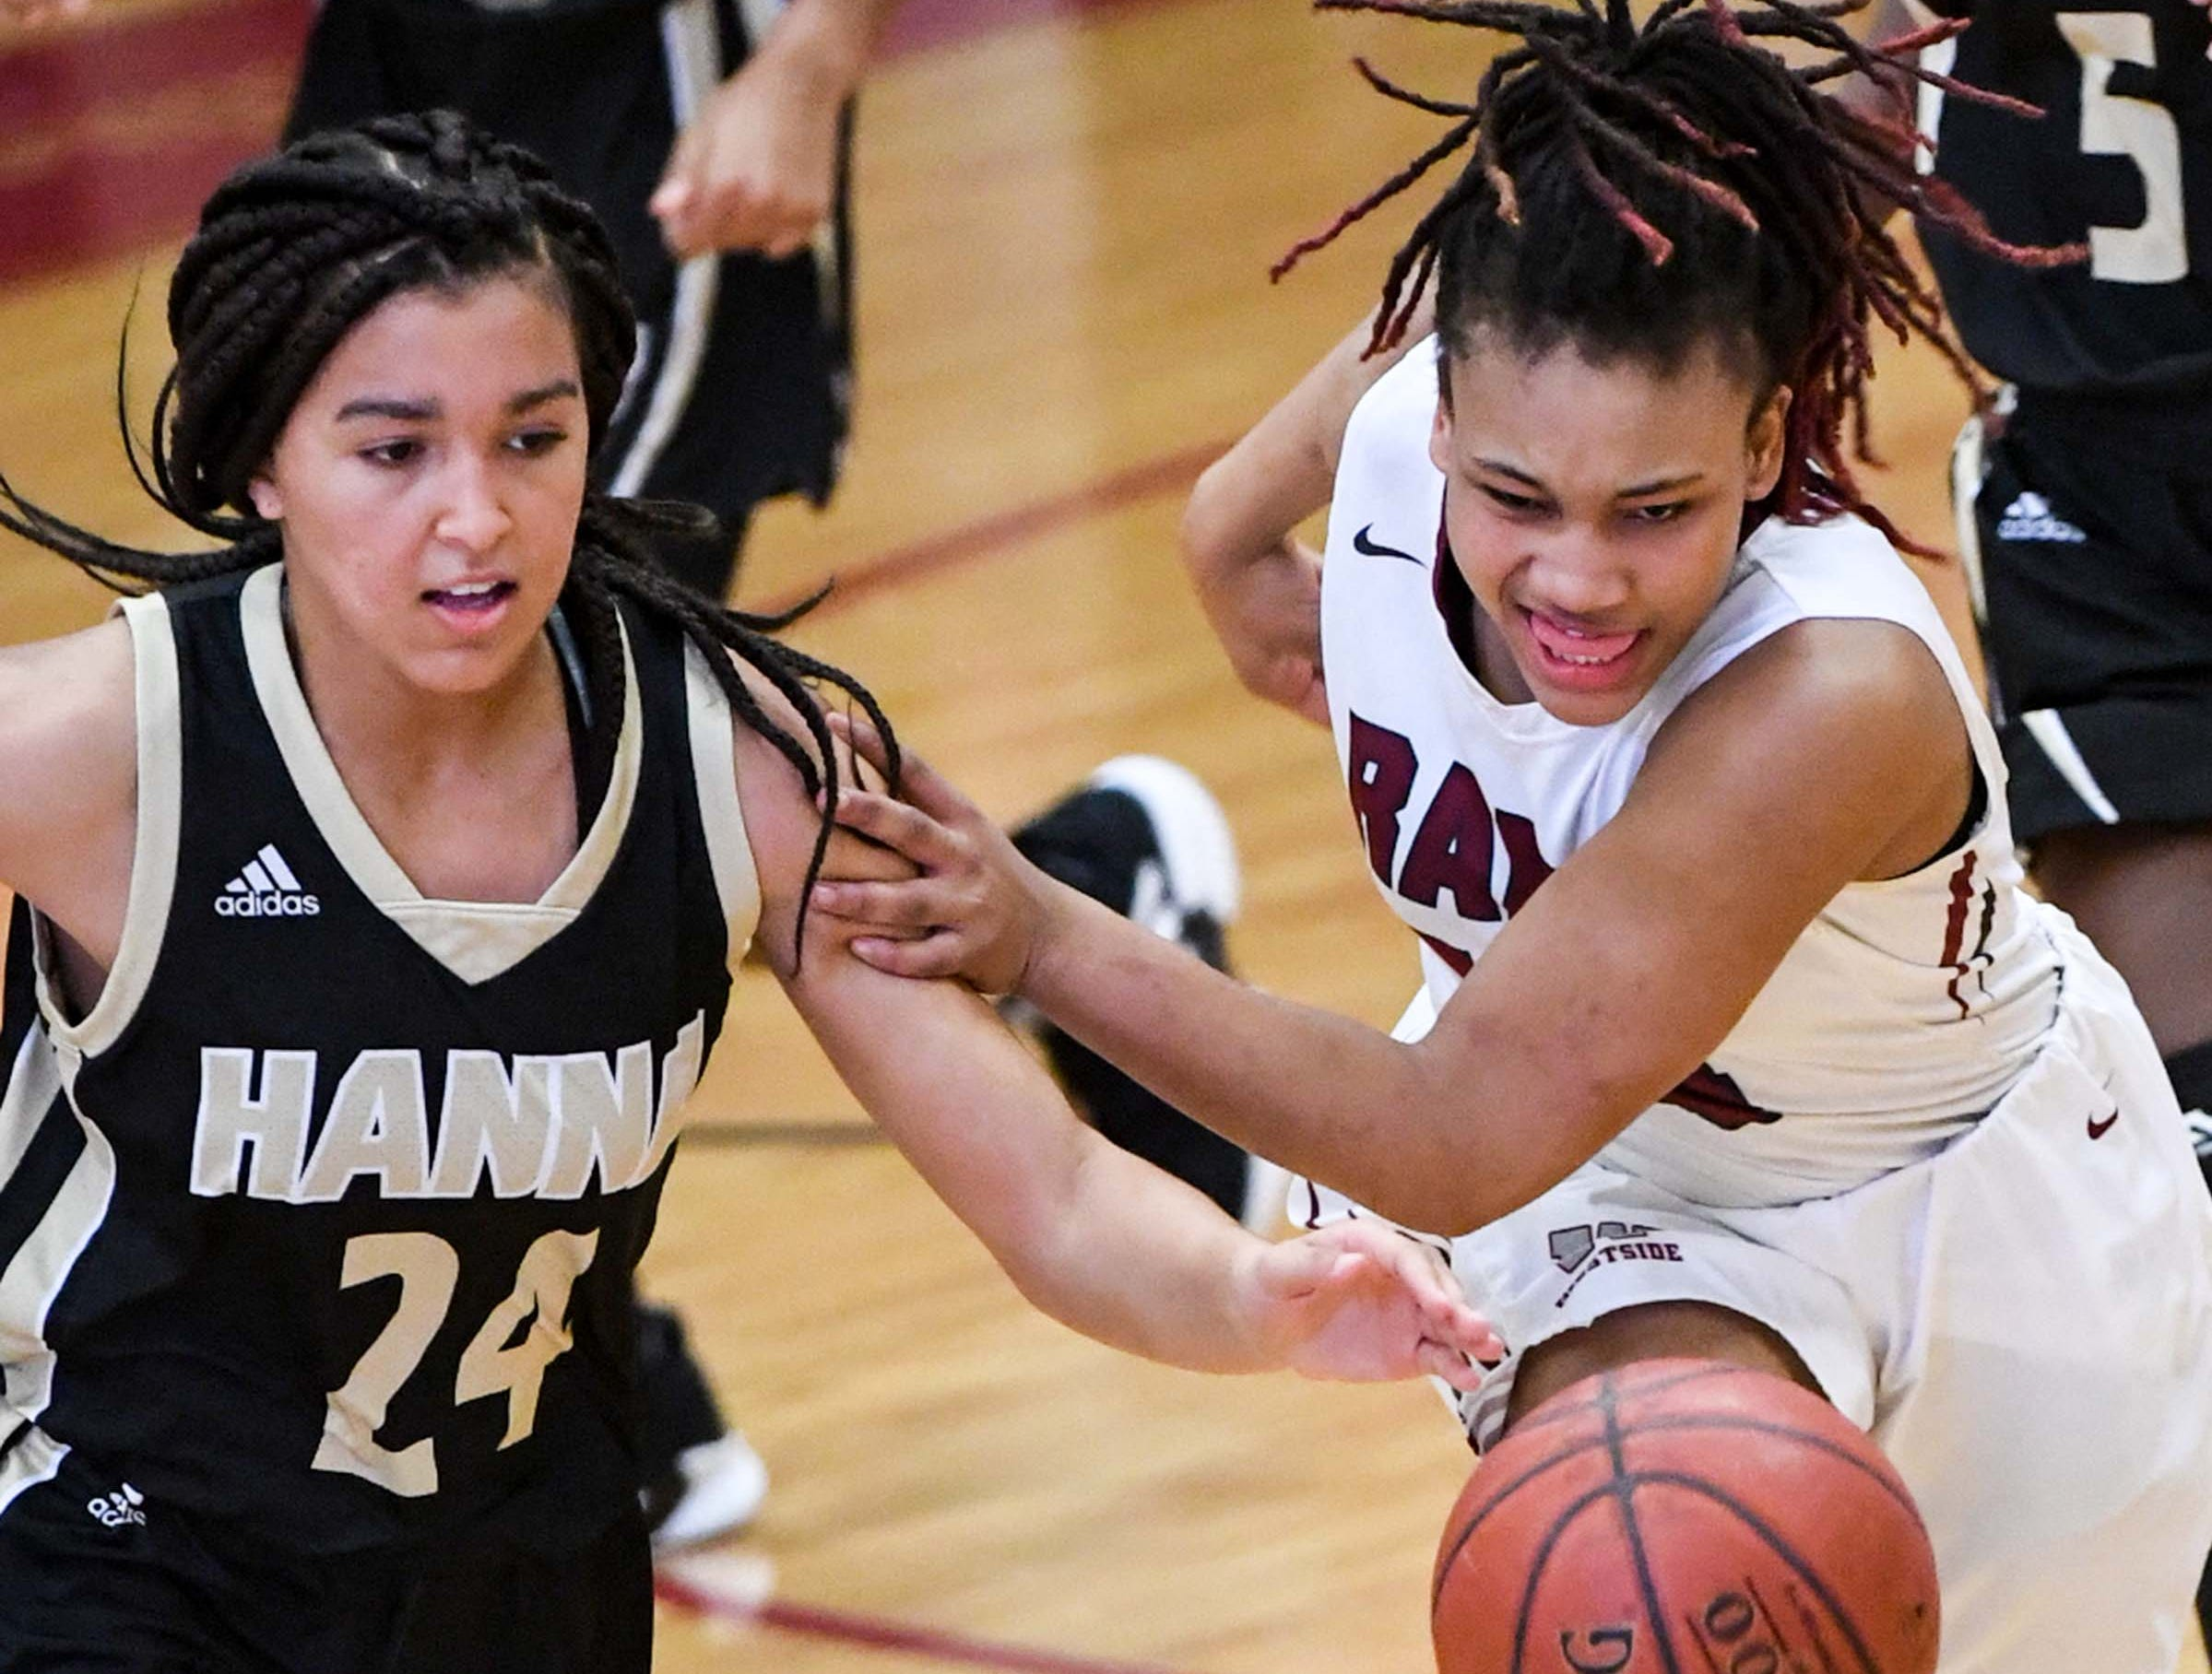 TL Hanna junior Maleia Bracone(24) and Westside junior Tatyana Lewis(14) reach for a loose ball during the fourth quarter at Westside High School in Anderson on Friday. Westside won 54-46.